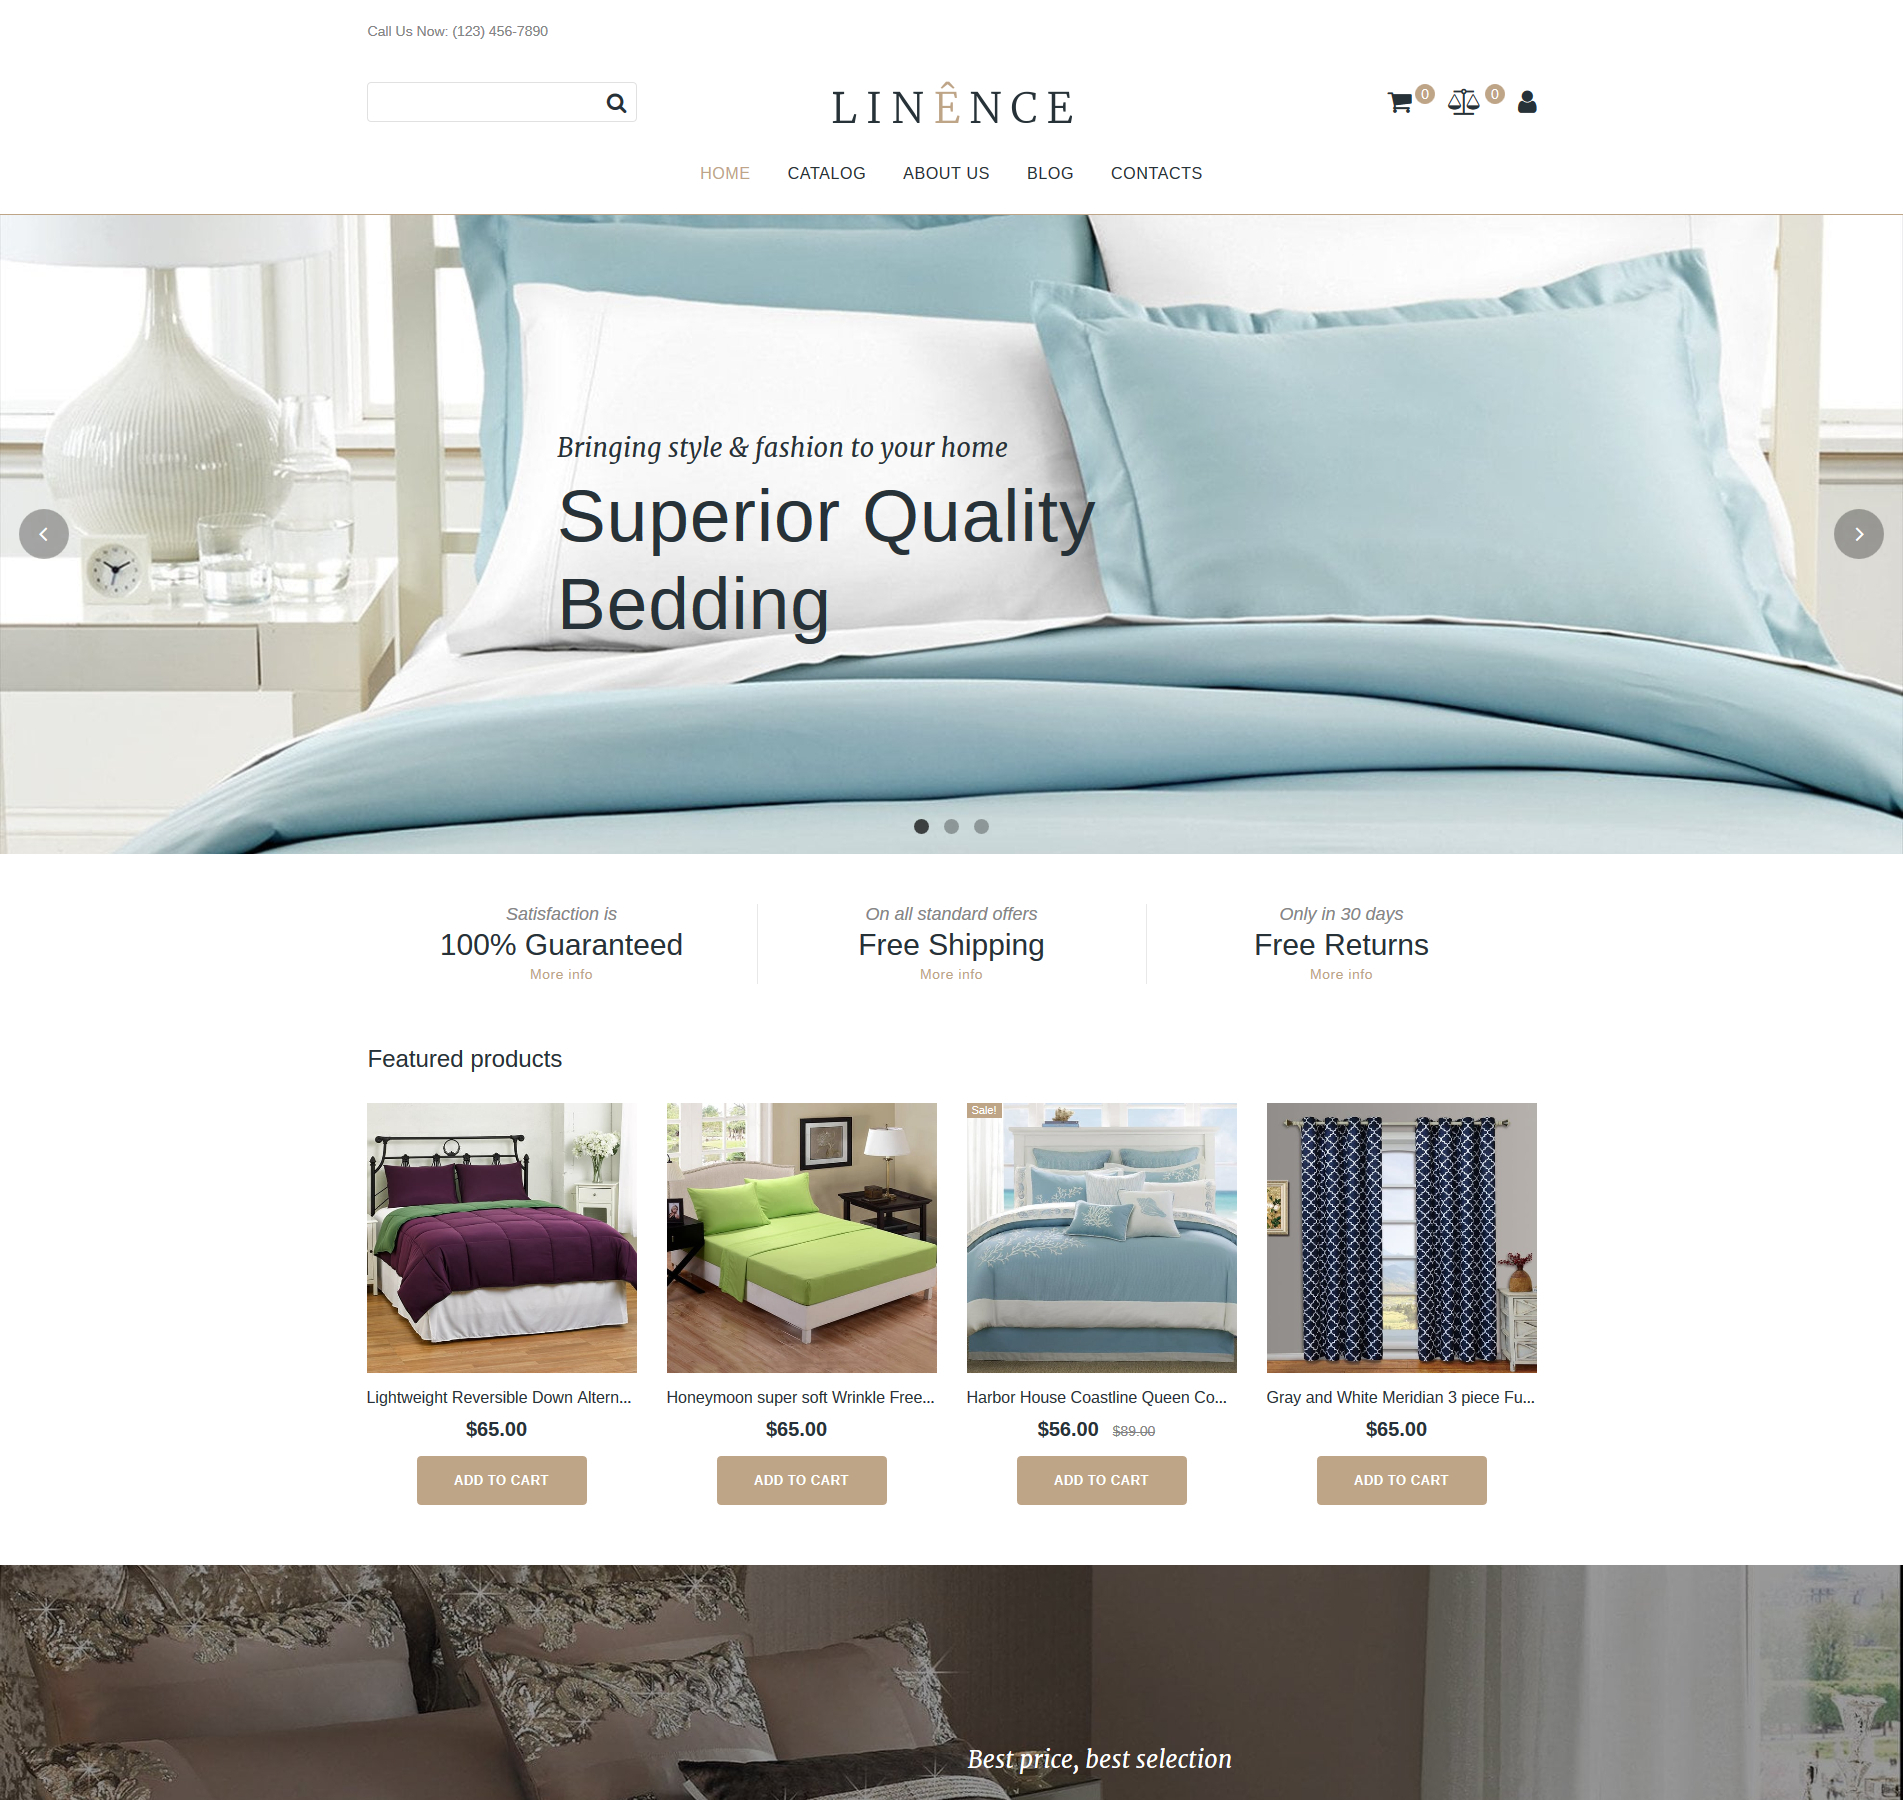 Website Design Template 74816 - lace bedding shop store online ecommerce comforter set sets sheets covers luxury cotton wholesale satin fabric material